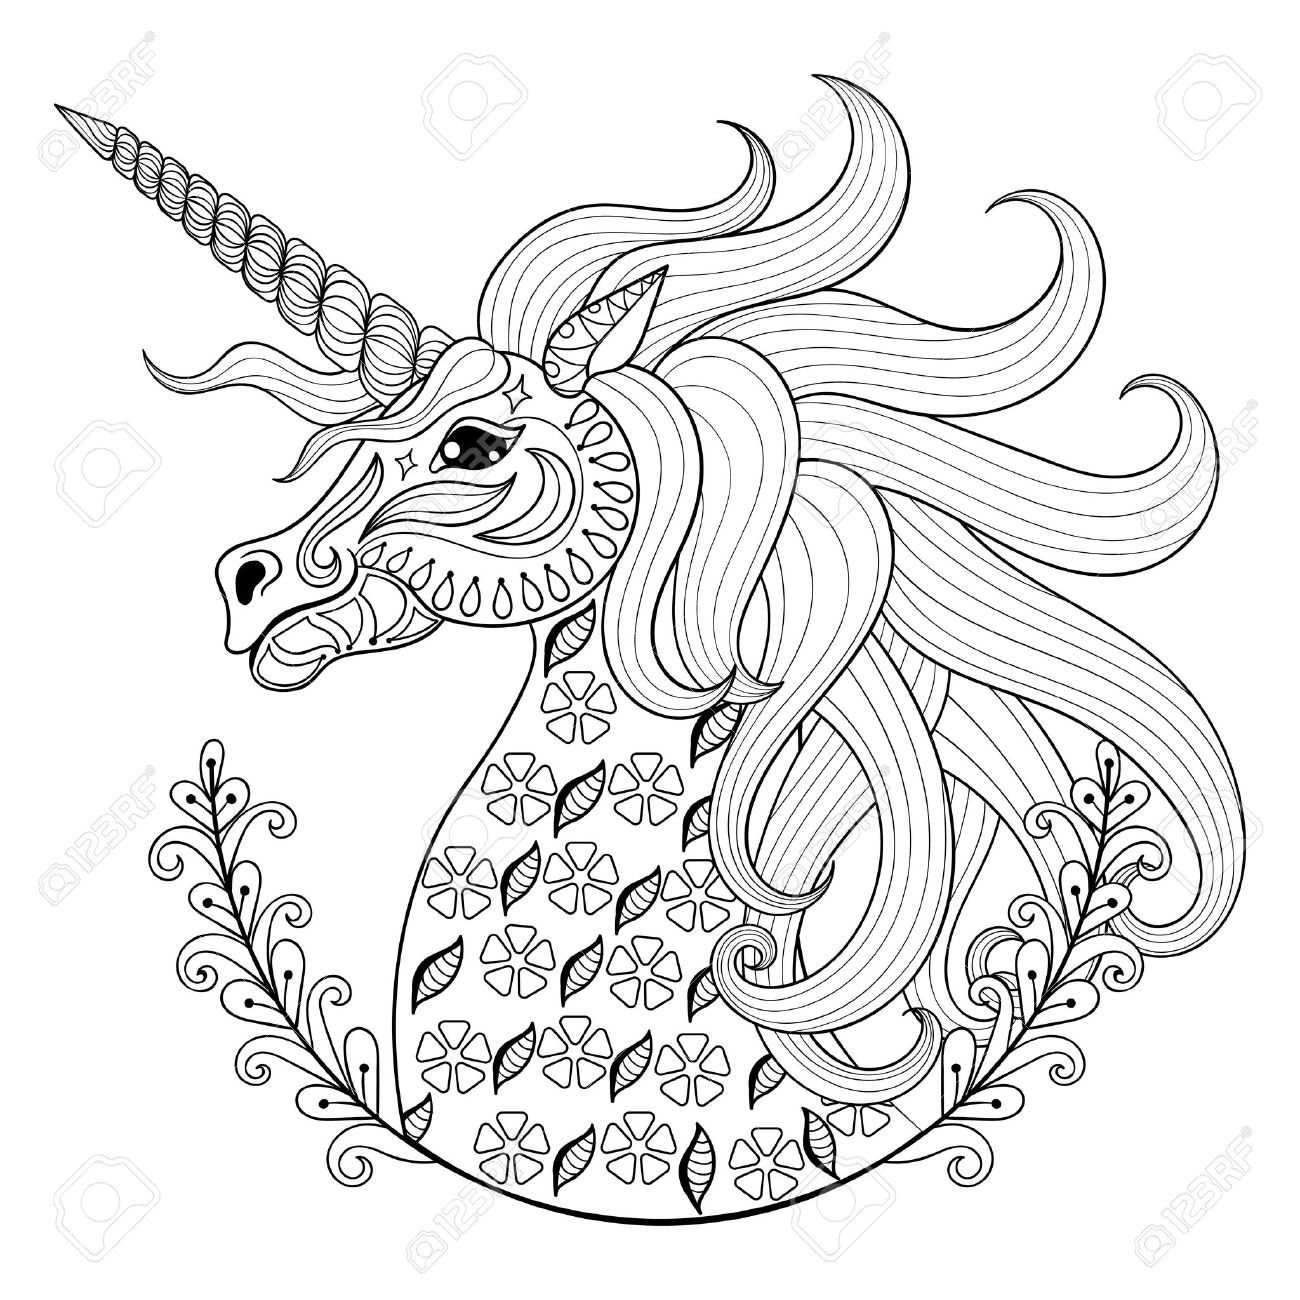 Coloriage Code Licorne.Coloriage Anti Stress Licorne